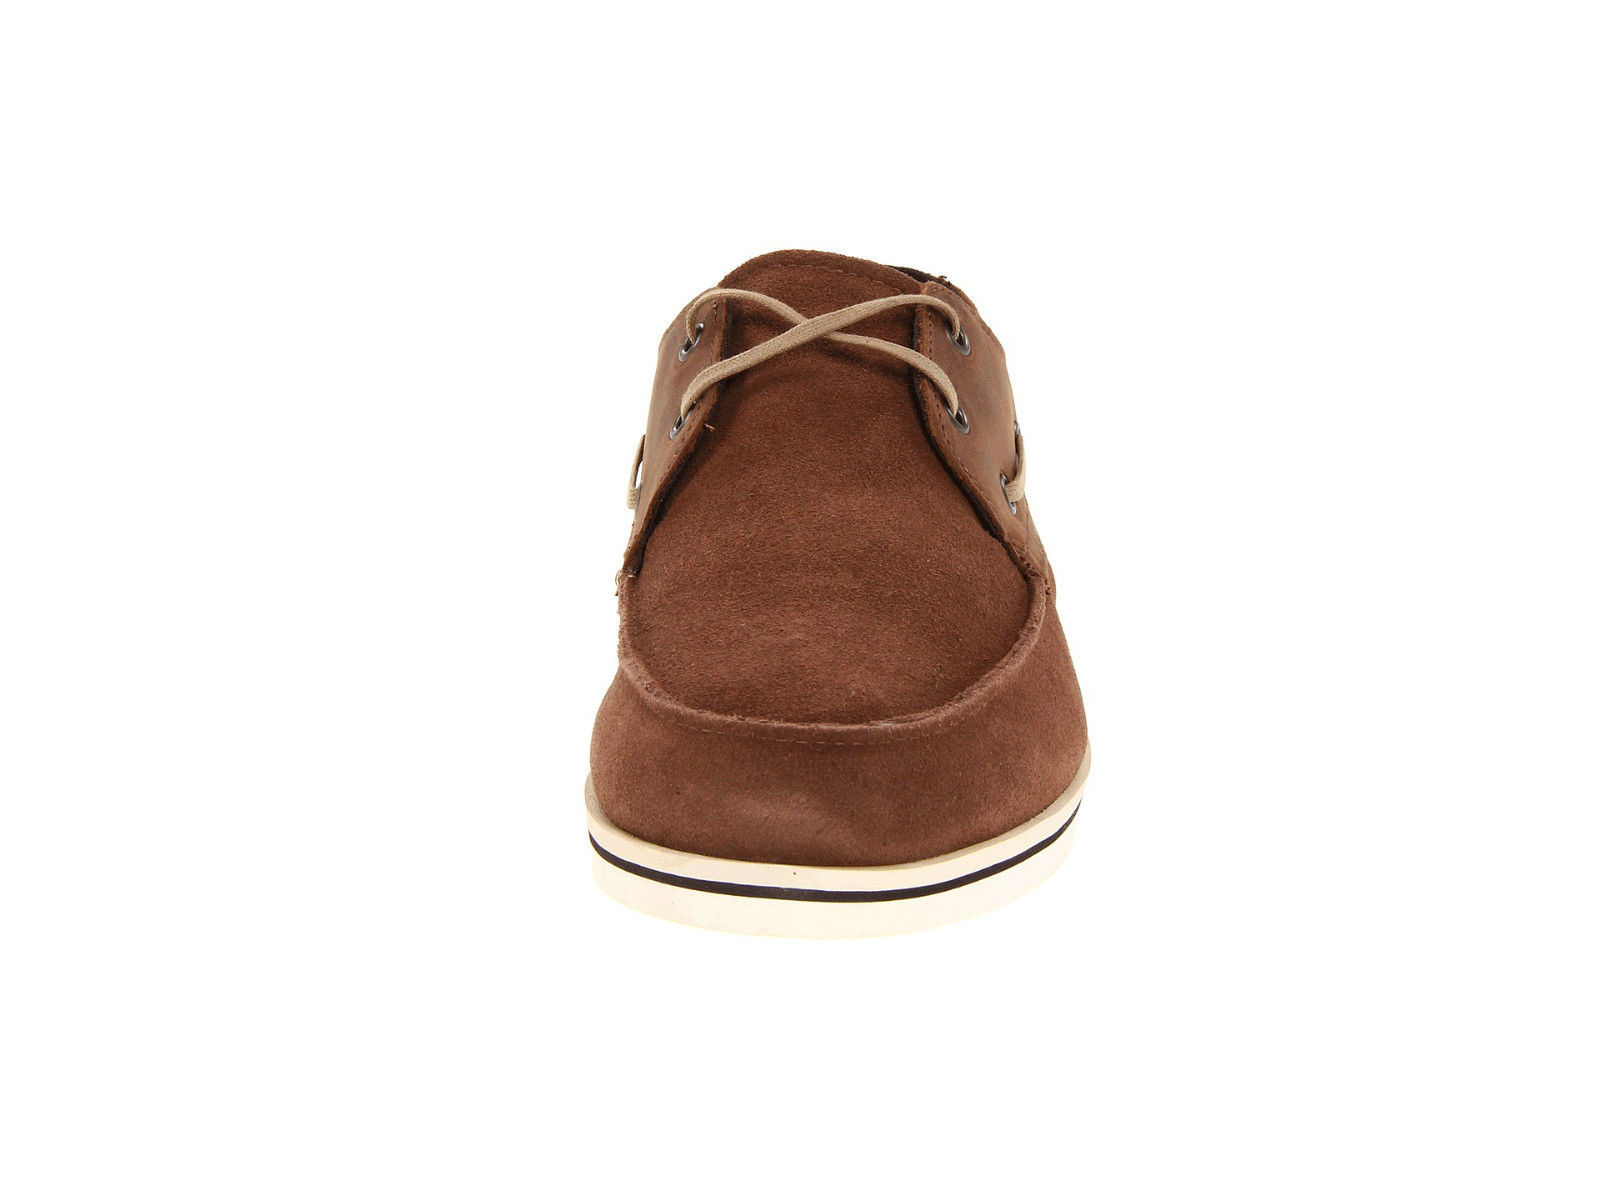 c40d6bb9b16a98 New Mens Vans Foghorn - Bison Biscotti Full Grain Leather Suede -Size12